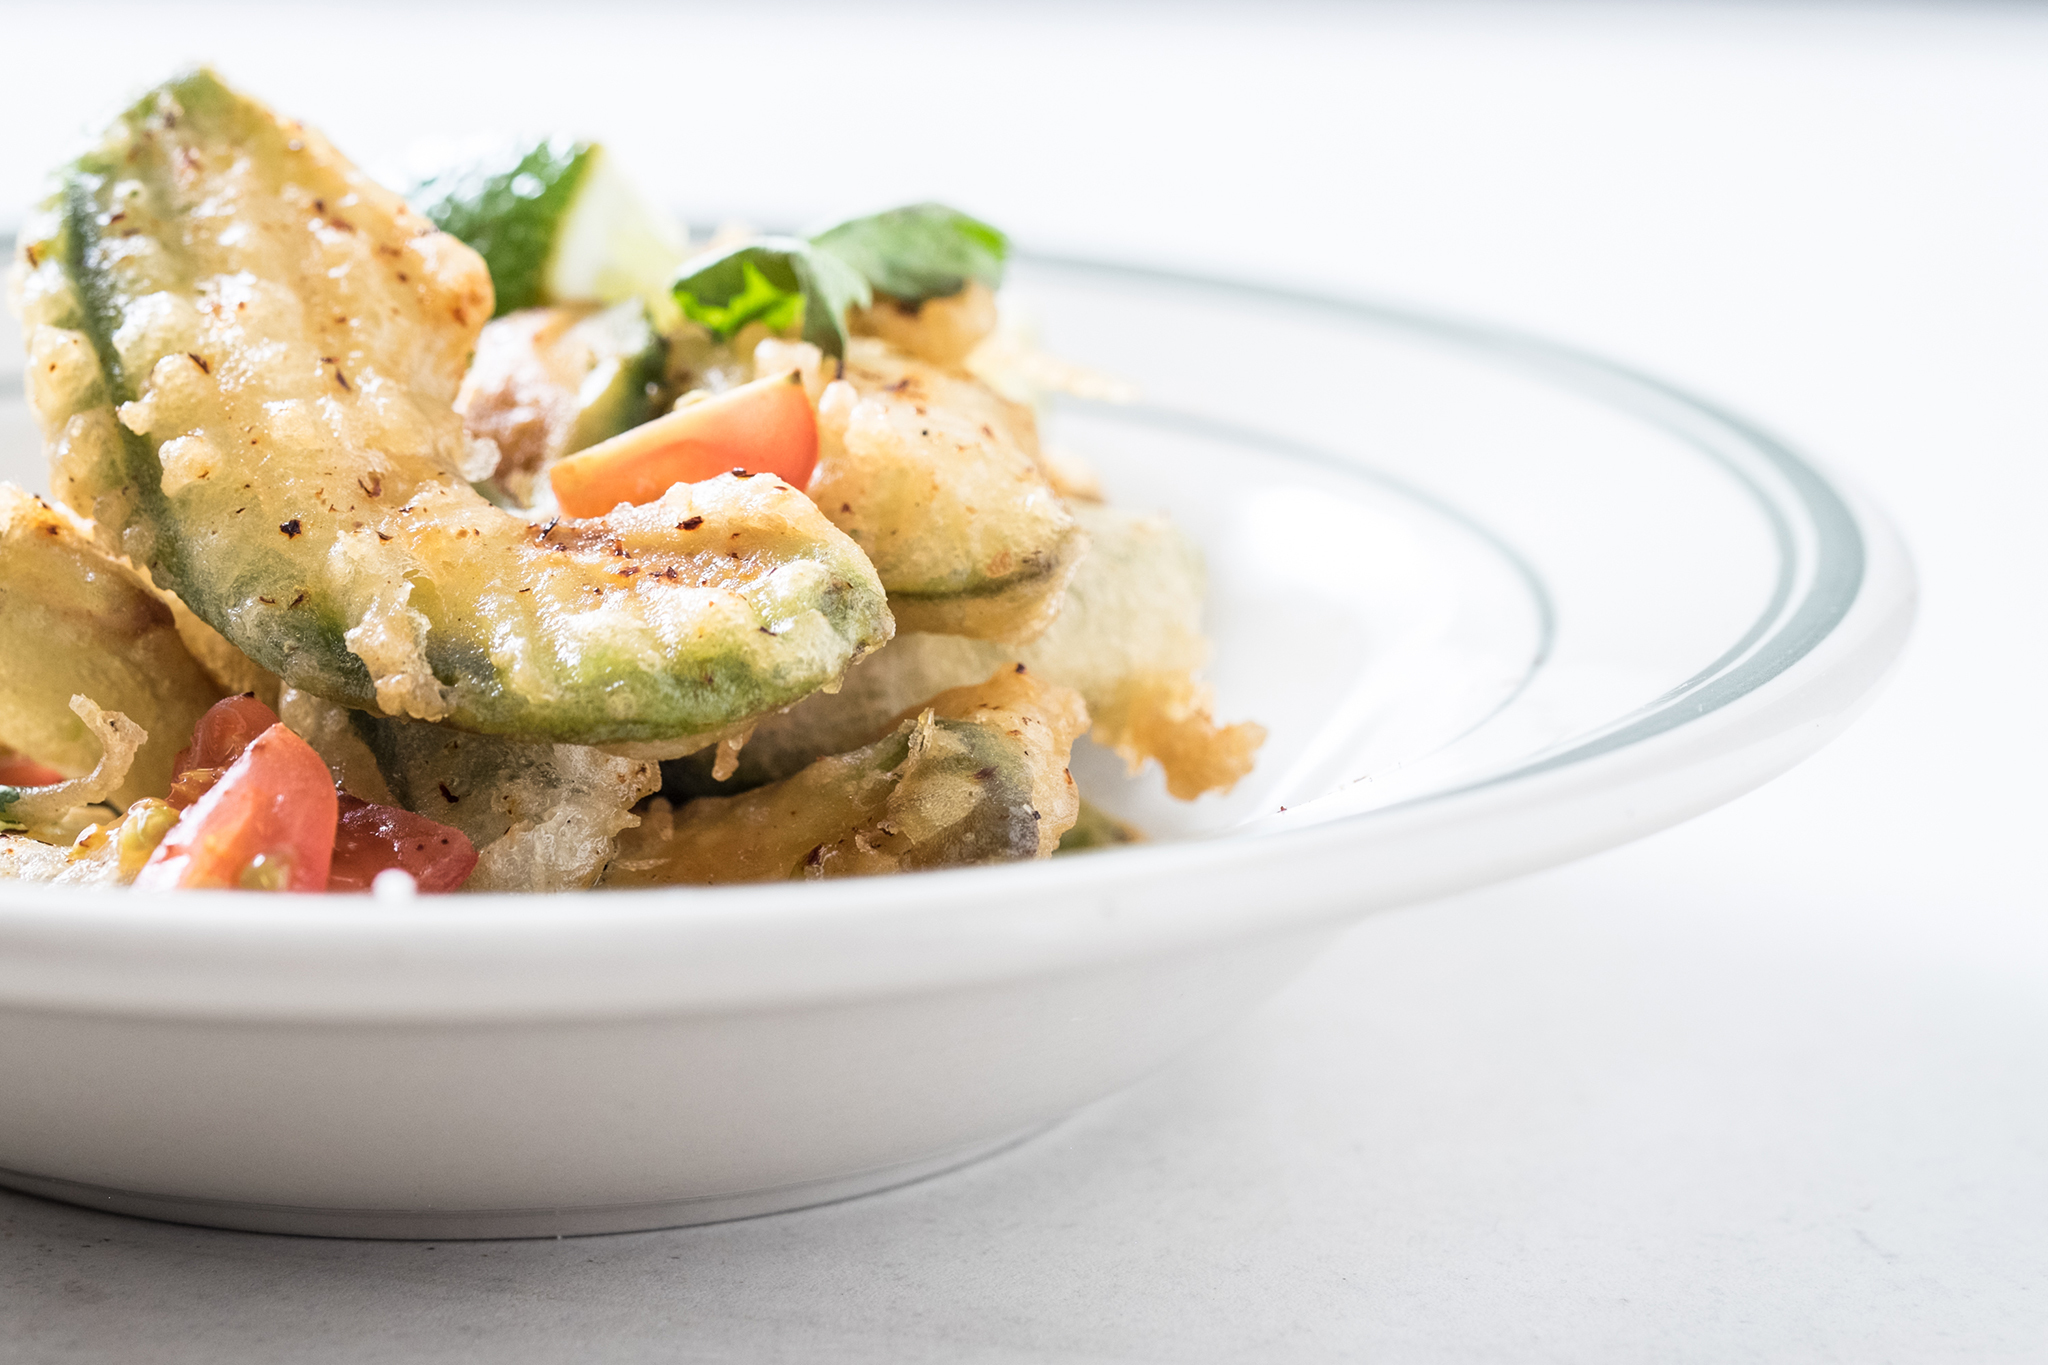 <p>Tempura-fried avocado with lime and chili is on the menu at mfk.</p>